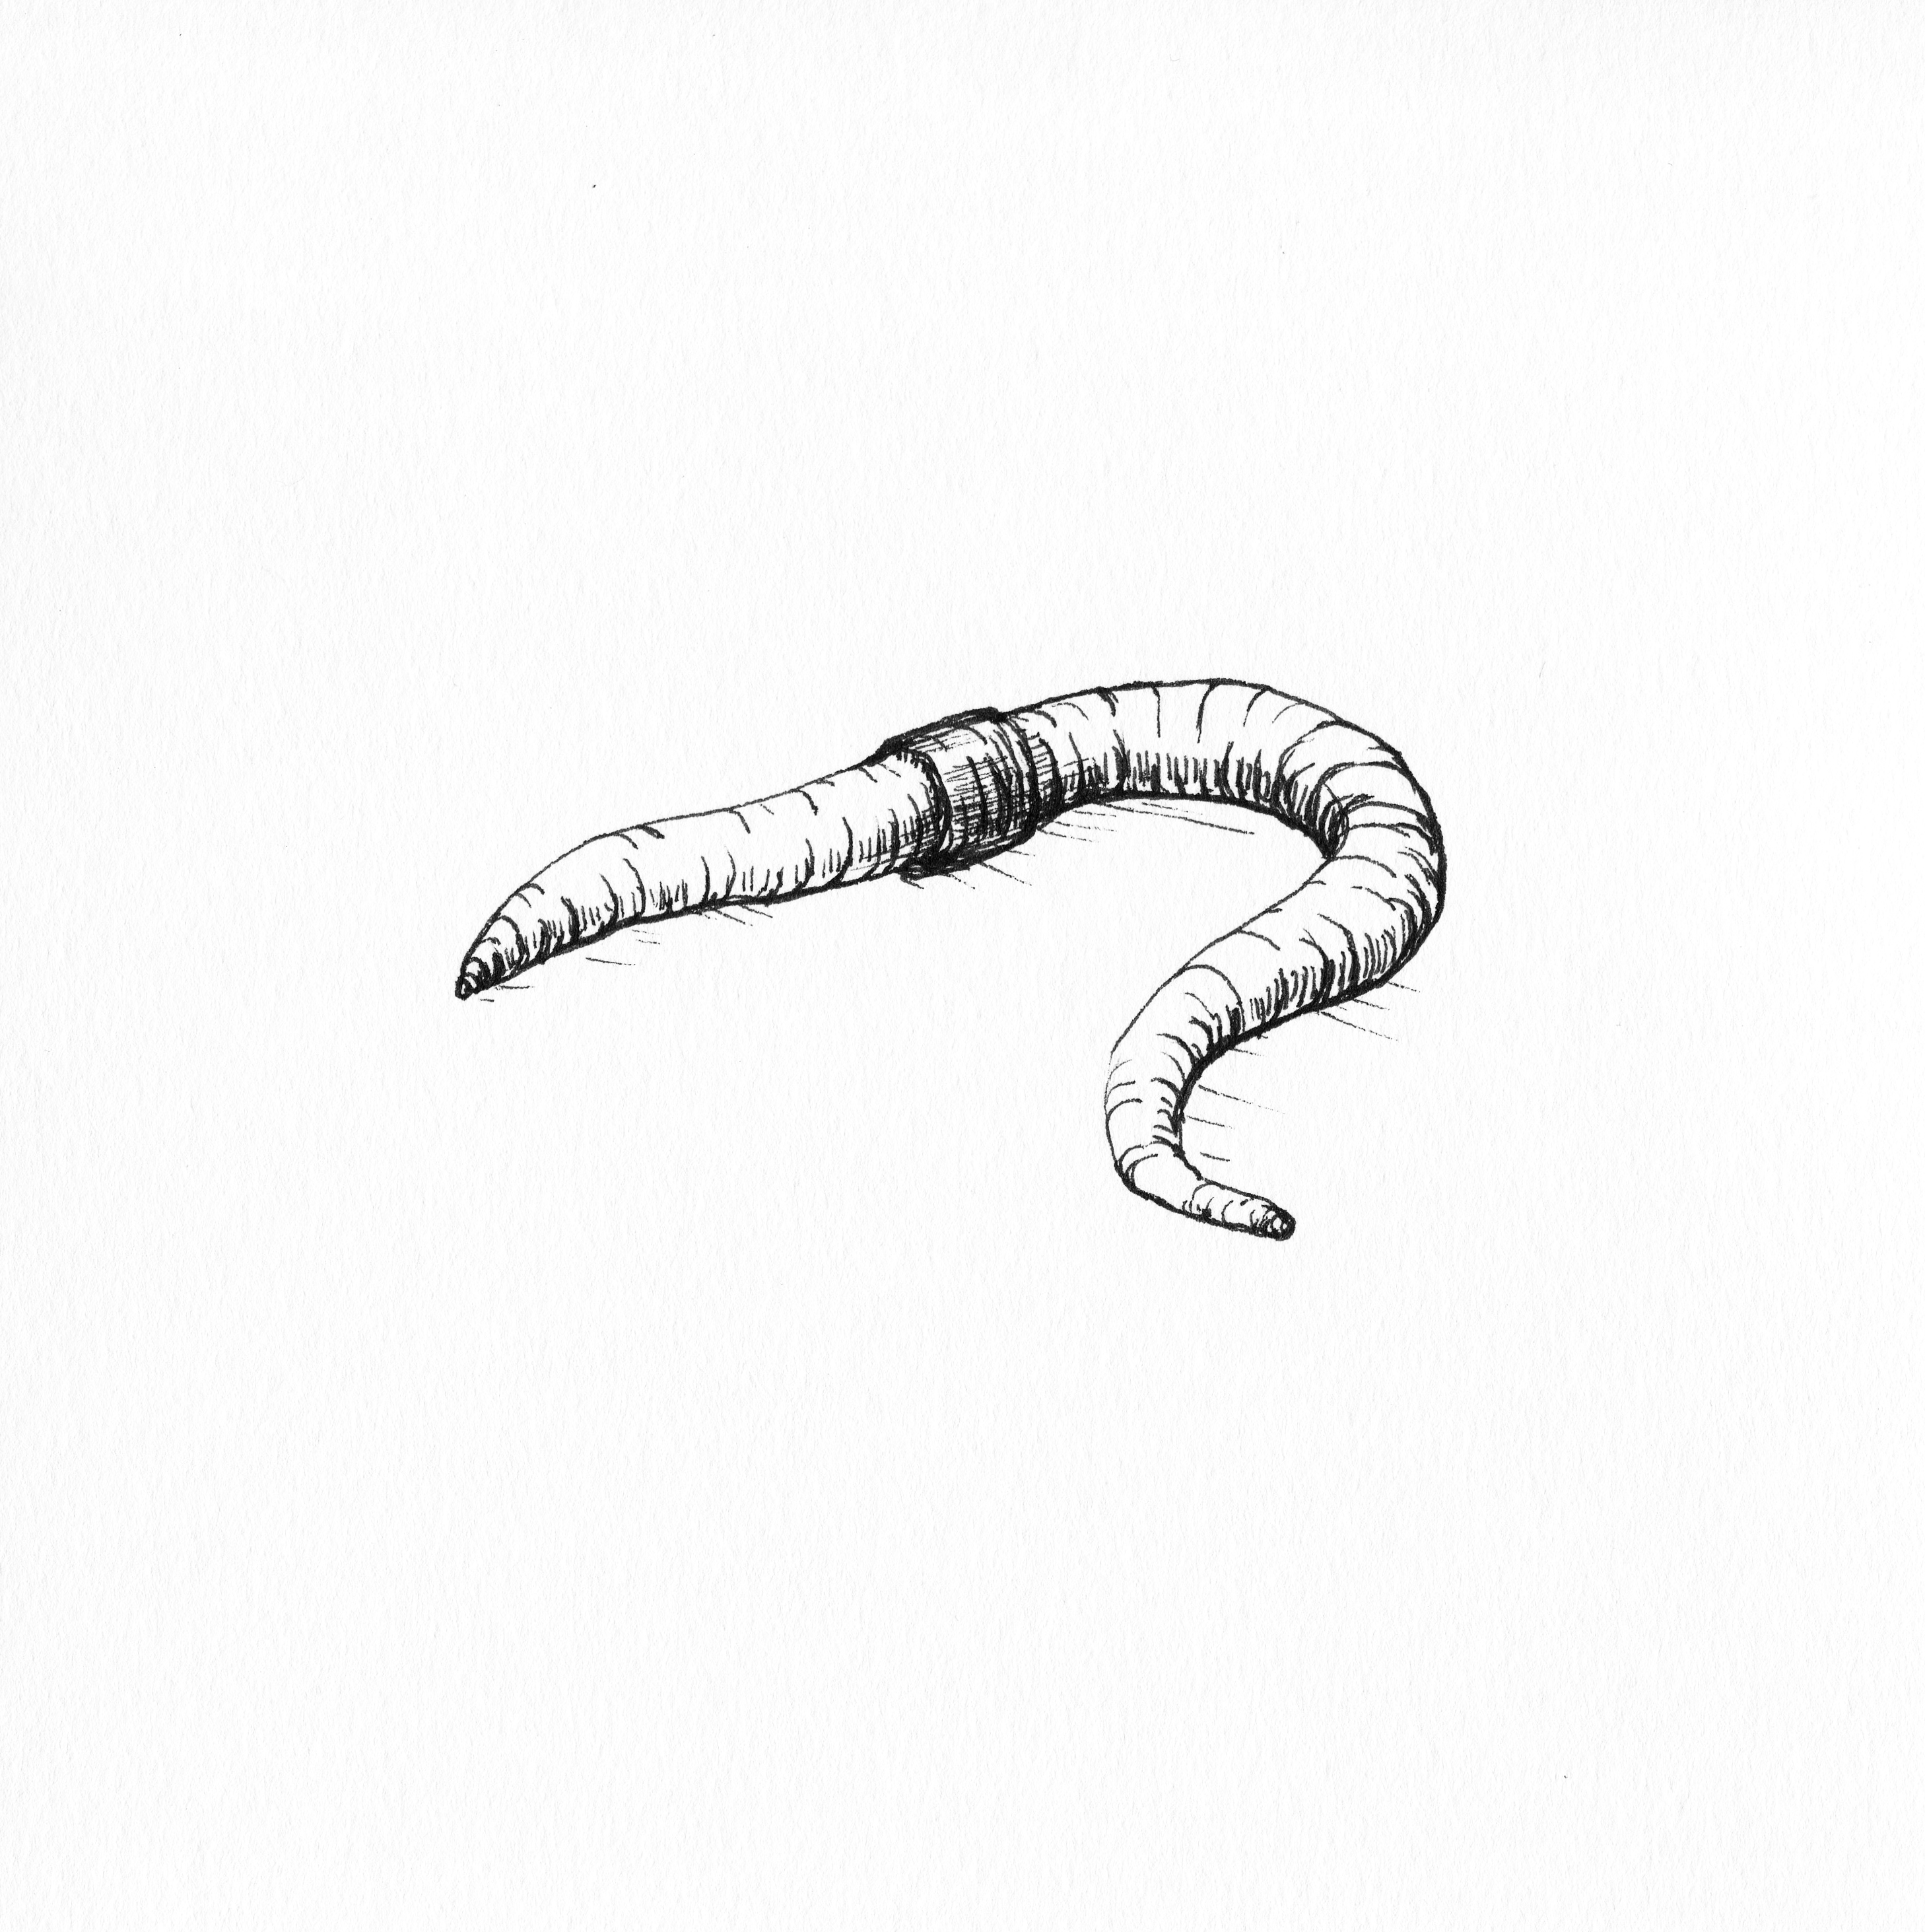 The Earth Worm In 2020 Nature Sketch Worm Drawing Earthworms